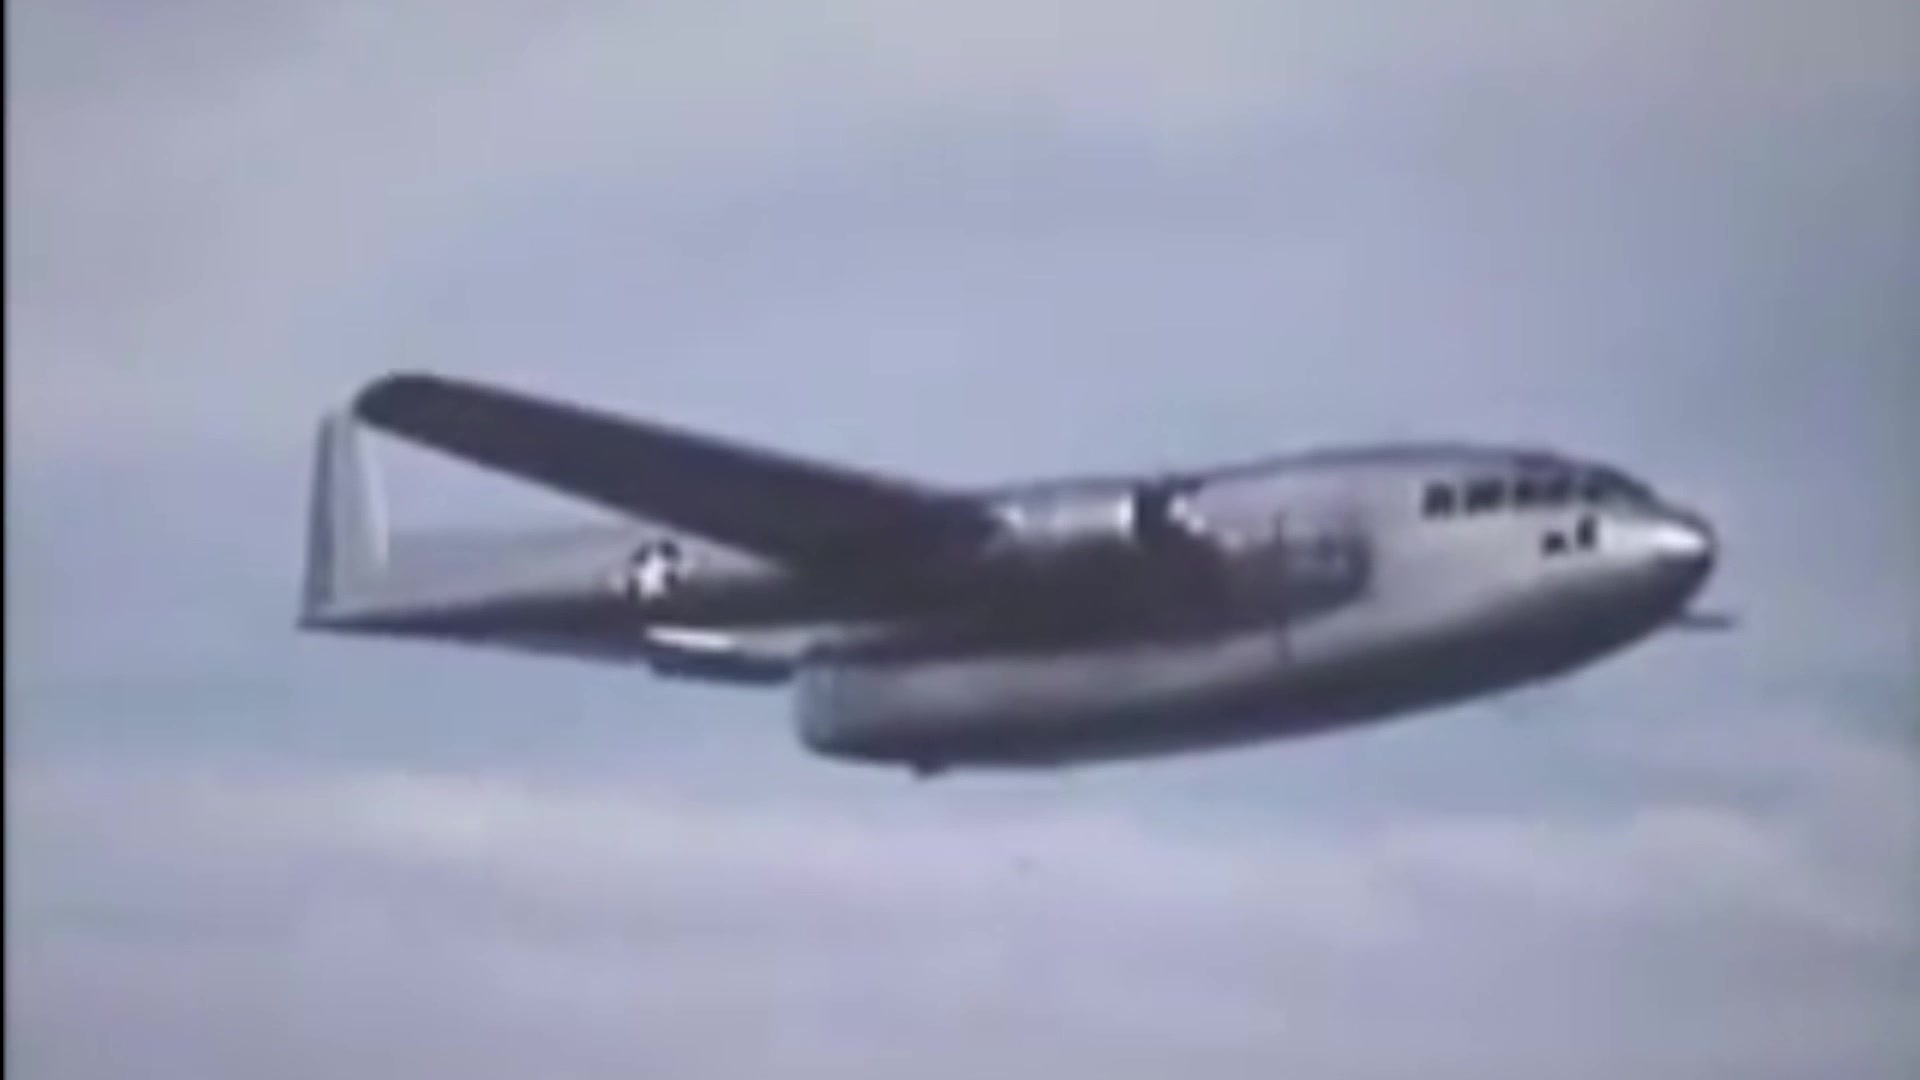 A video that traces the history of the Niagara Falls Air Reserve Station's lineage back to World War II where they operated as the 3rd Combat Cargo Squadron where they flew the C-47 Skytrain. The 914th ARW would go on to fly the C-119 Flying Boxcar, C-130 Hercules, and their current air frame the KC-135 Stratotanker.